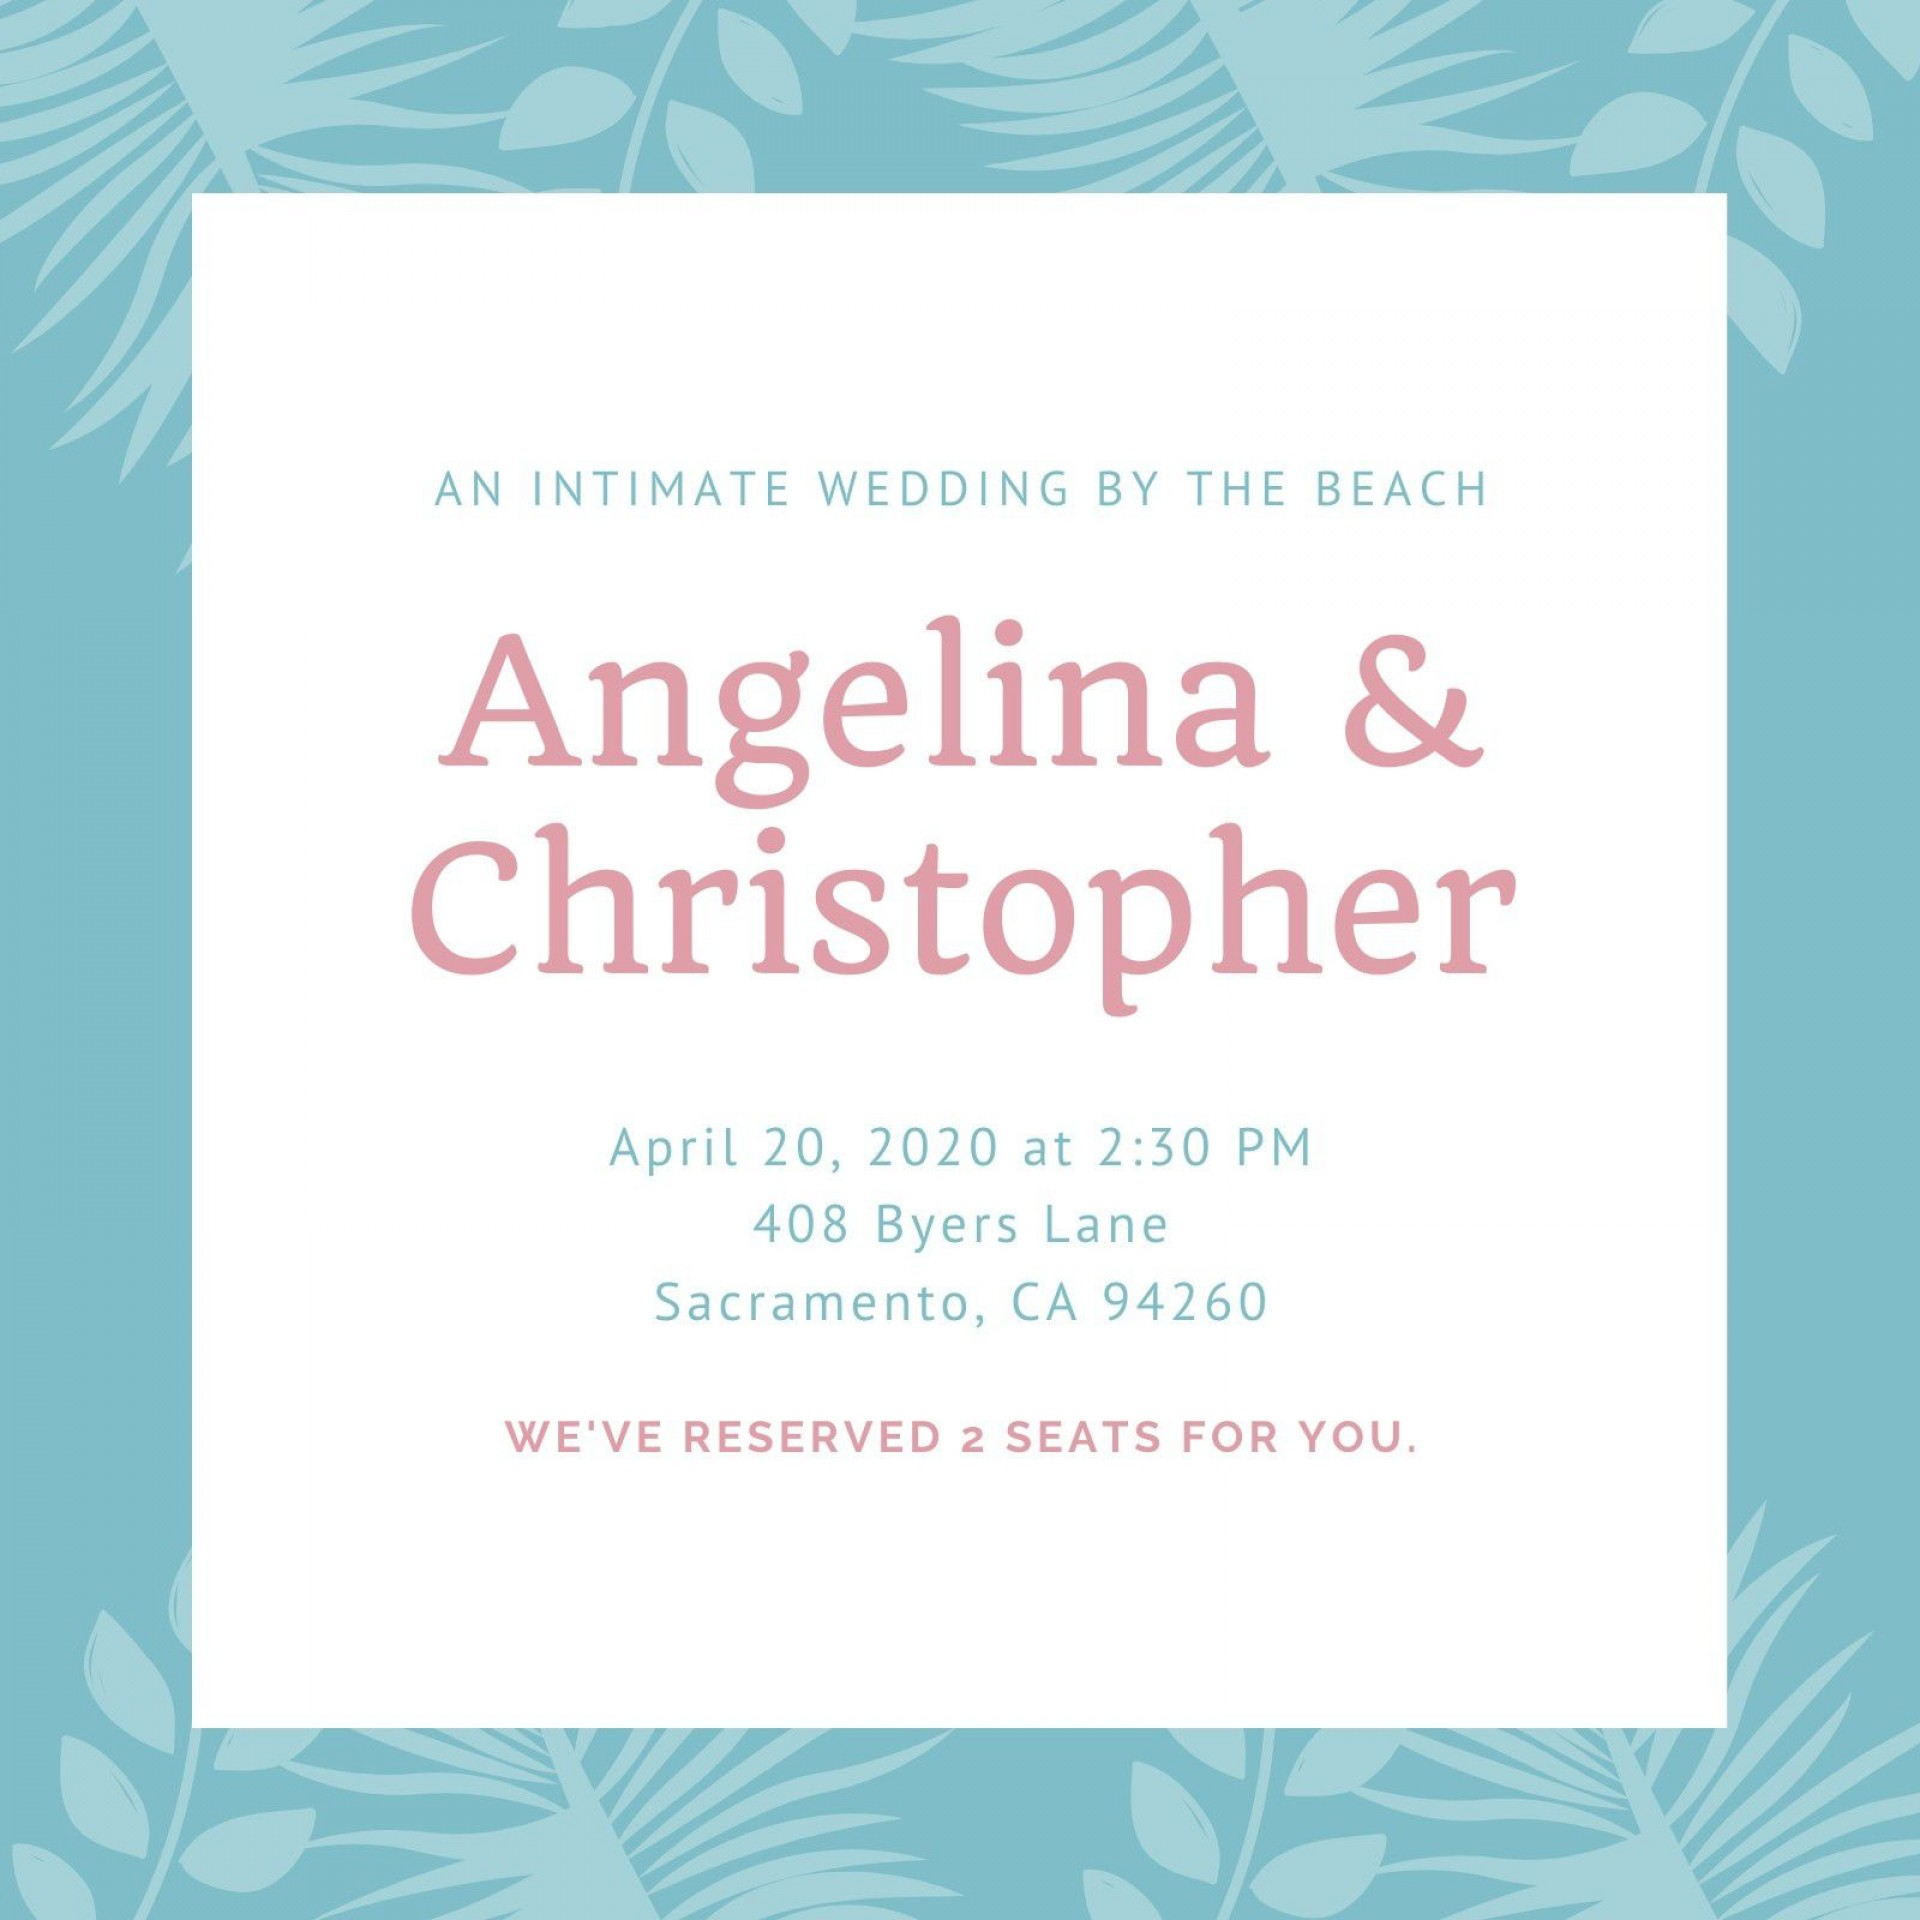 002 Wonderful Beach Wedding Invitation Template Highest Clarity  Templates Free Download For Word1920